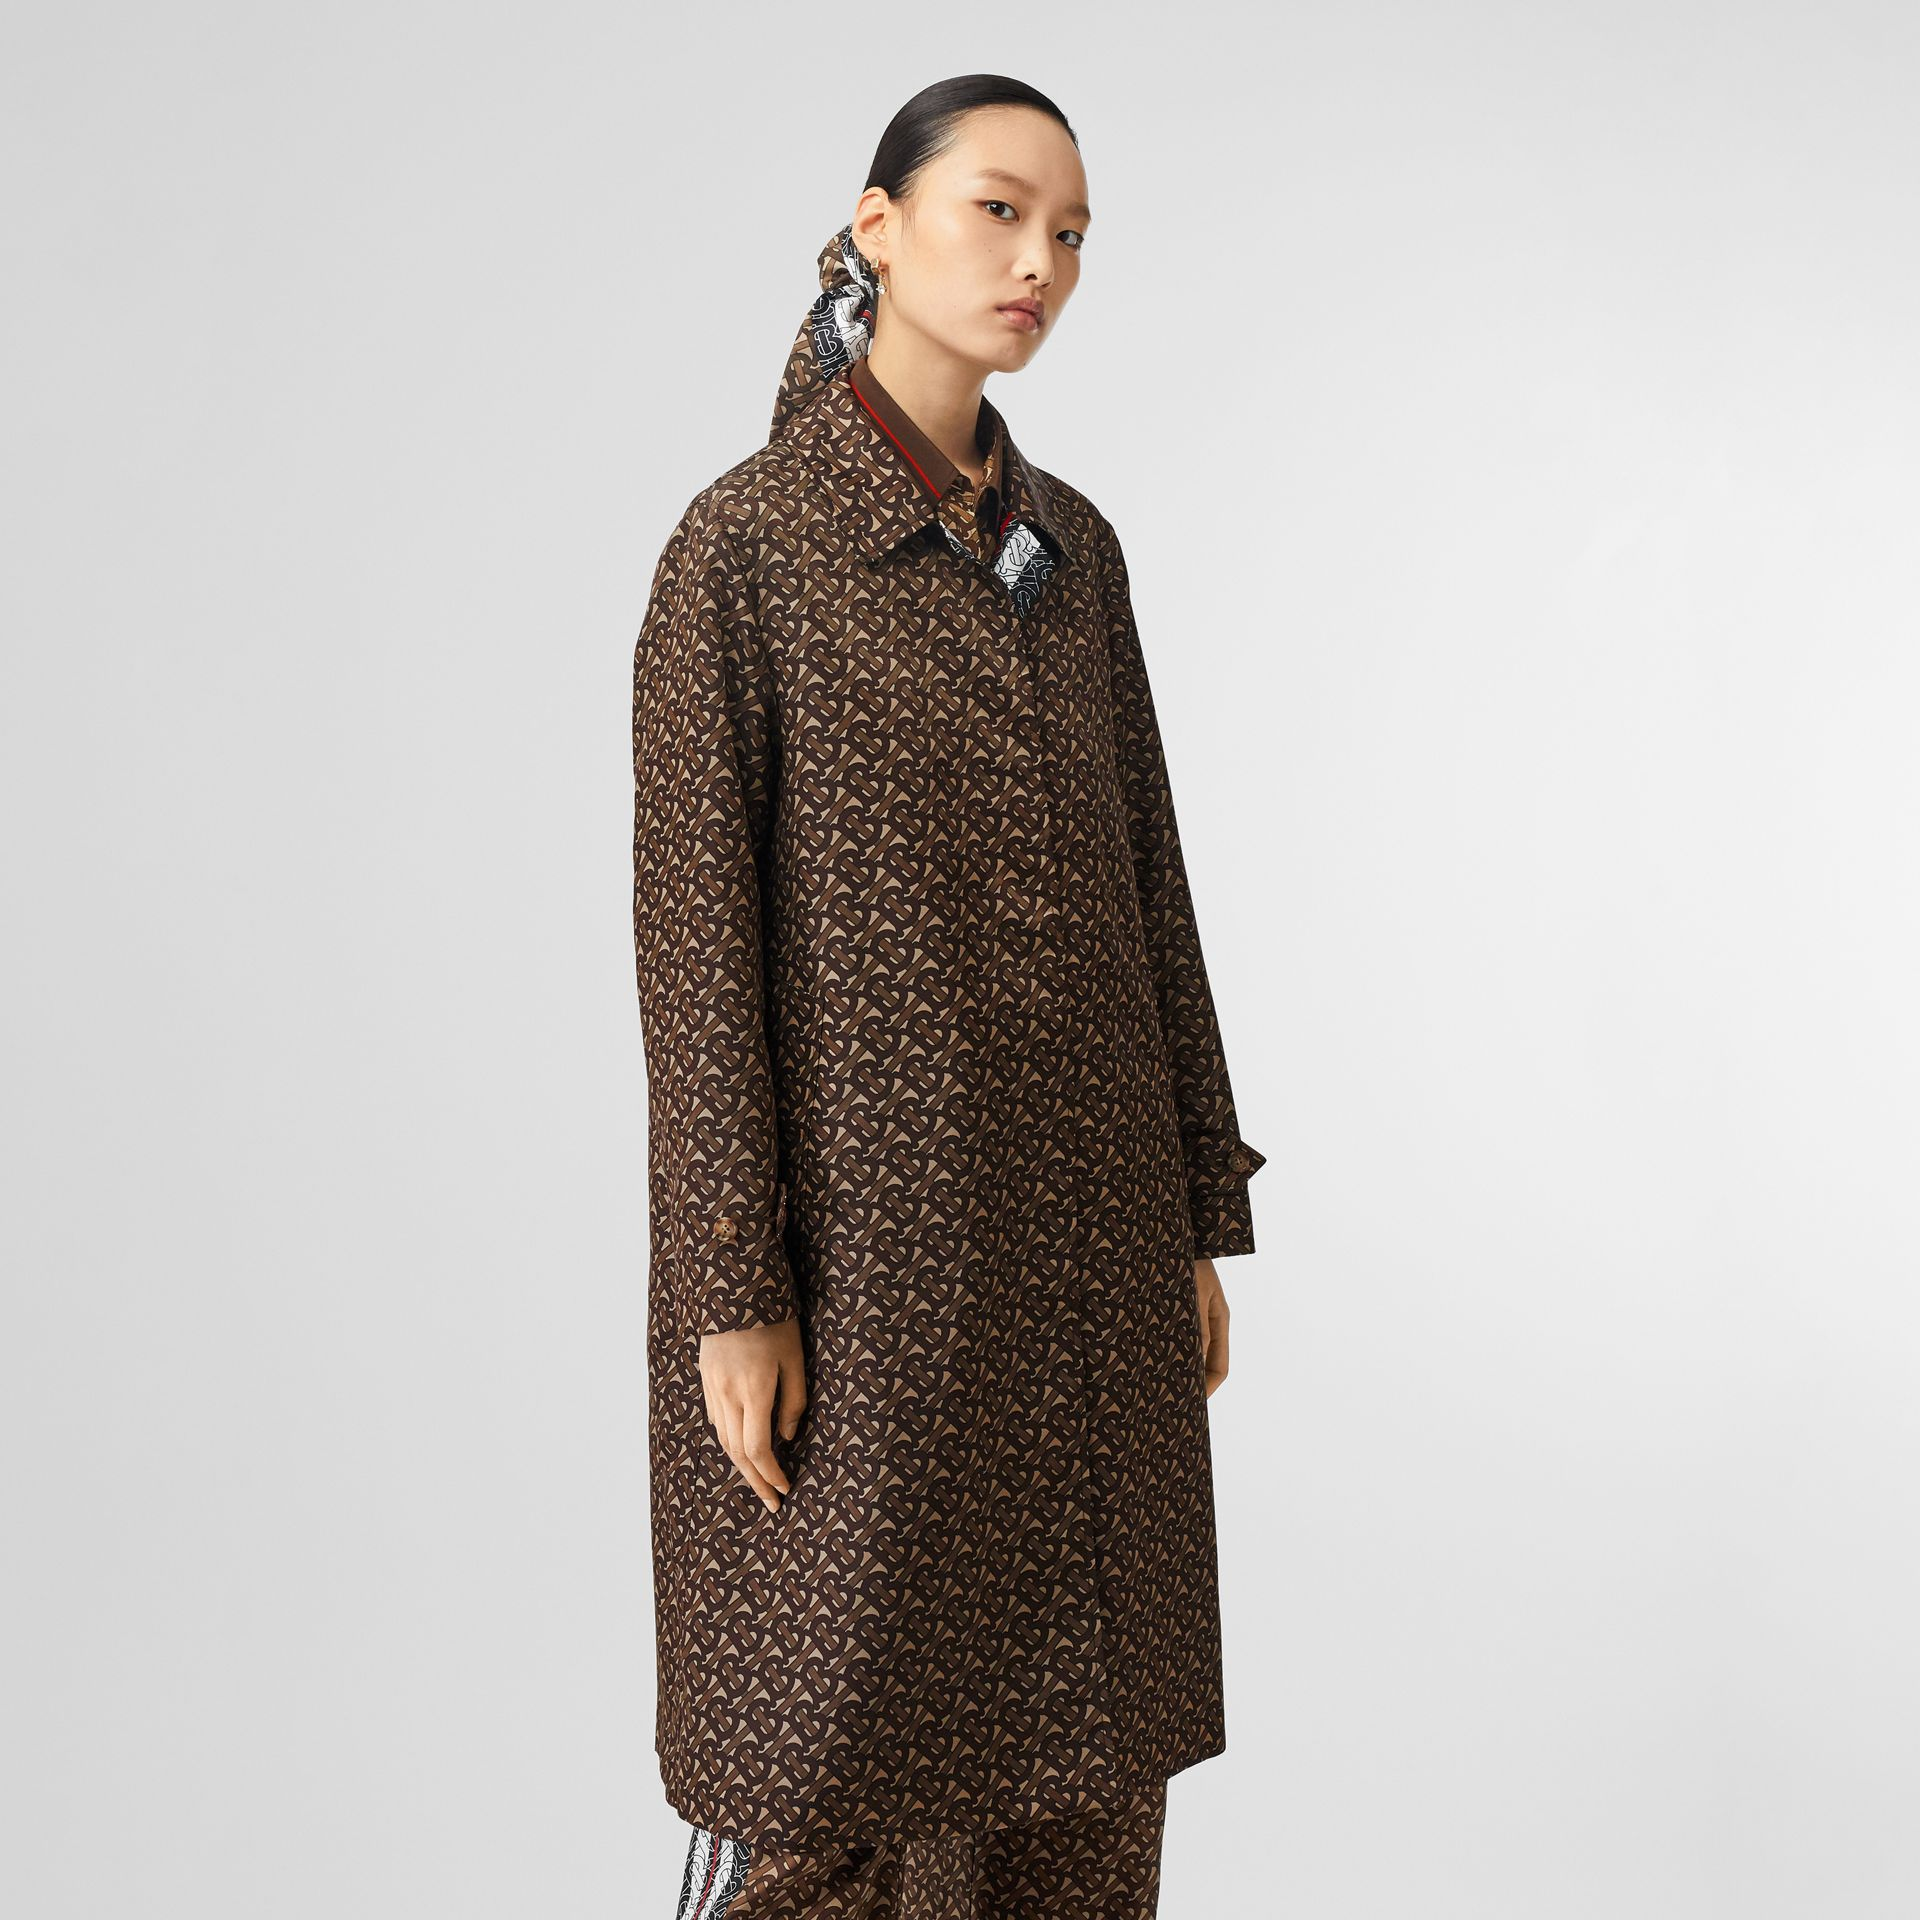 Monogram Stripe Print Nylon Car Coat in Bridle Brown - Women | Burberry - gallery image 5